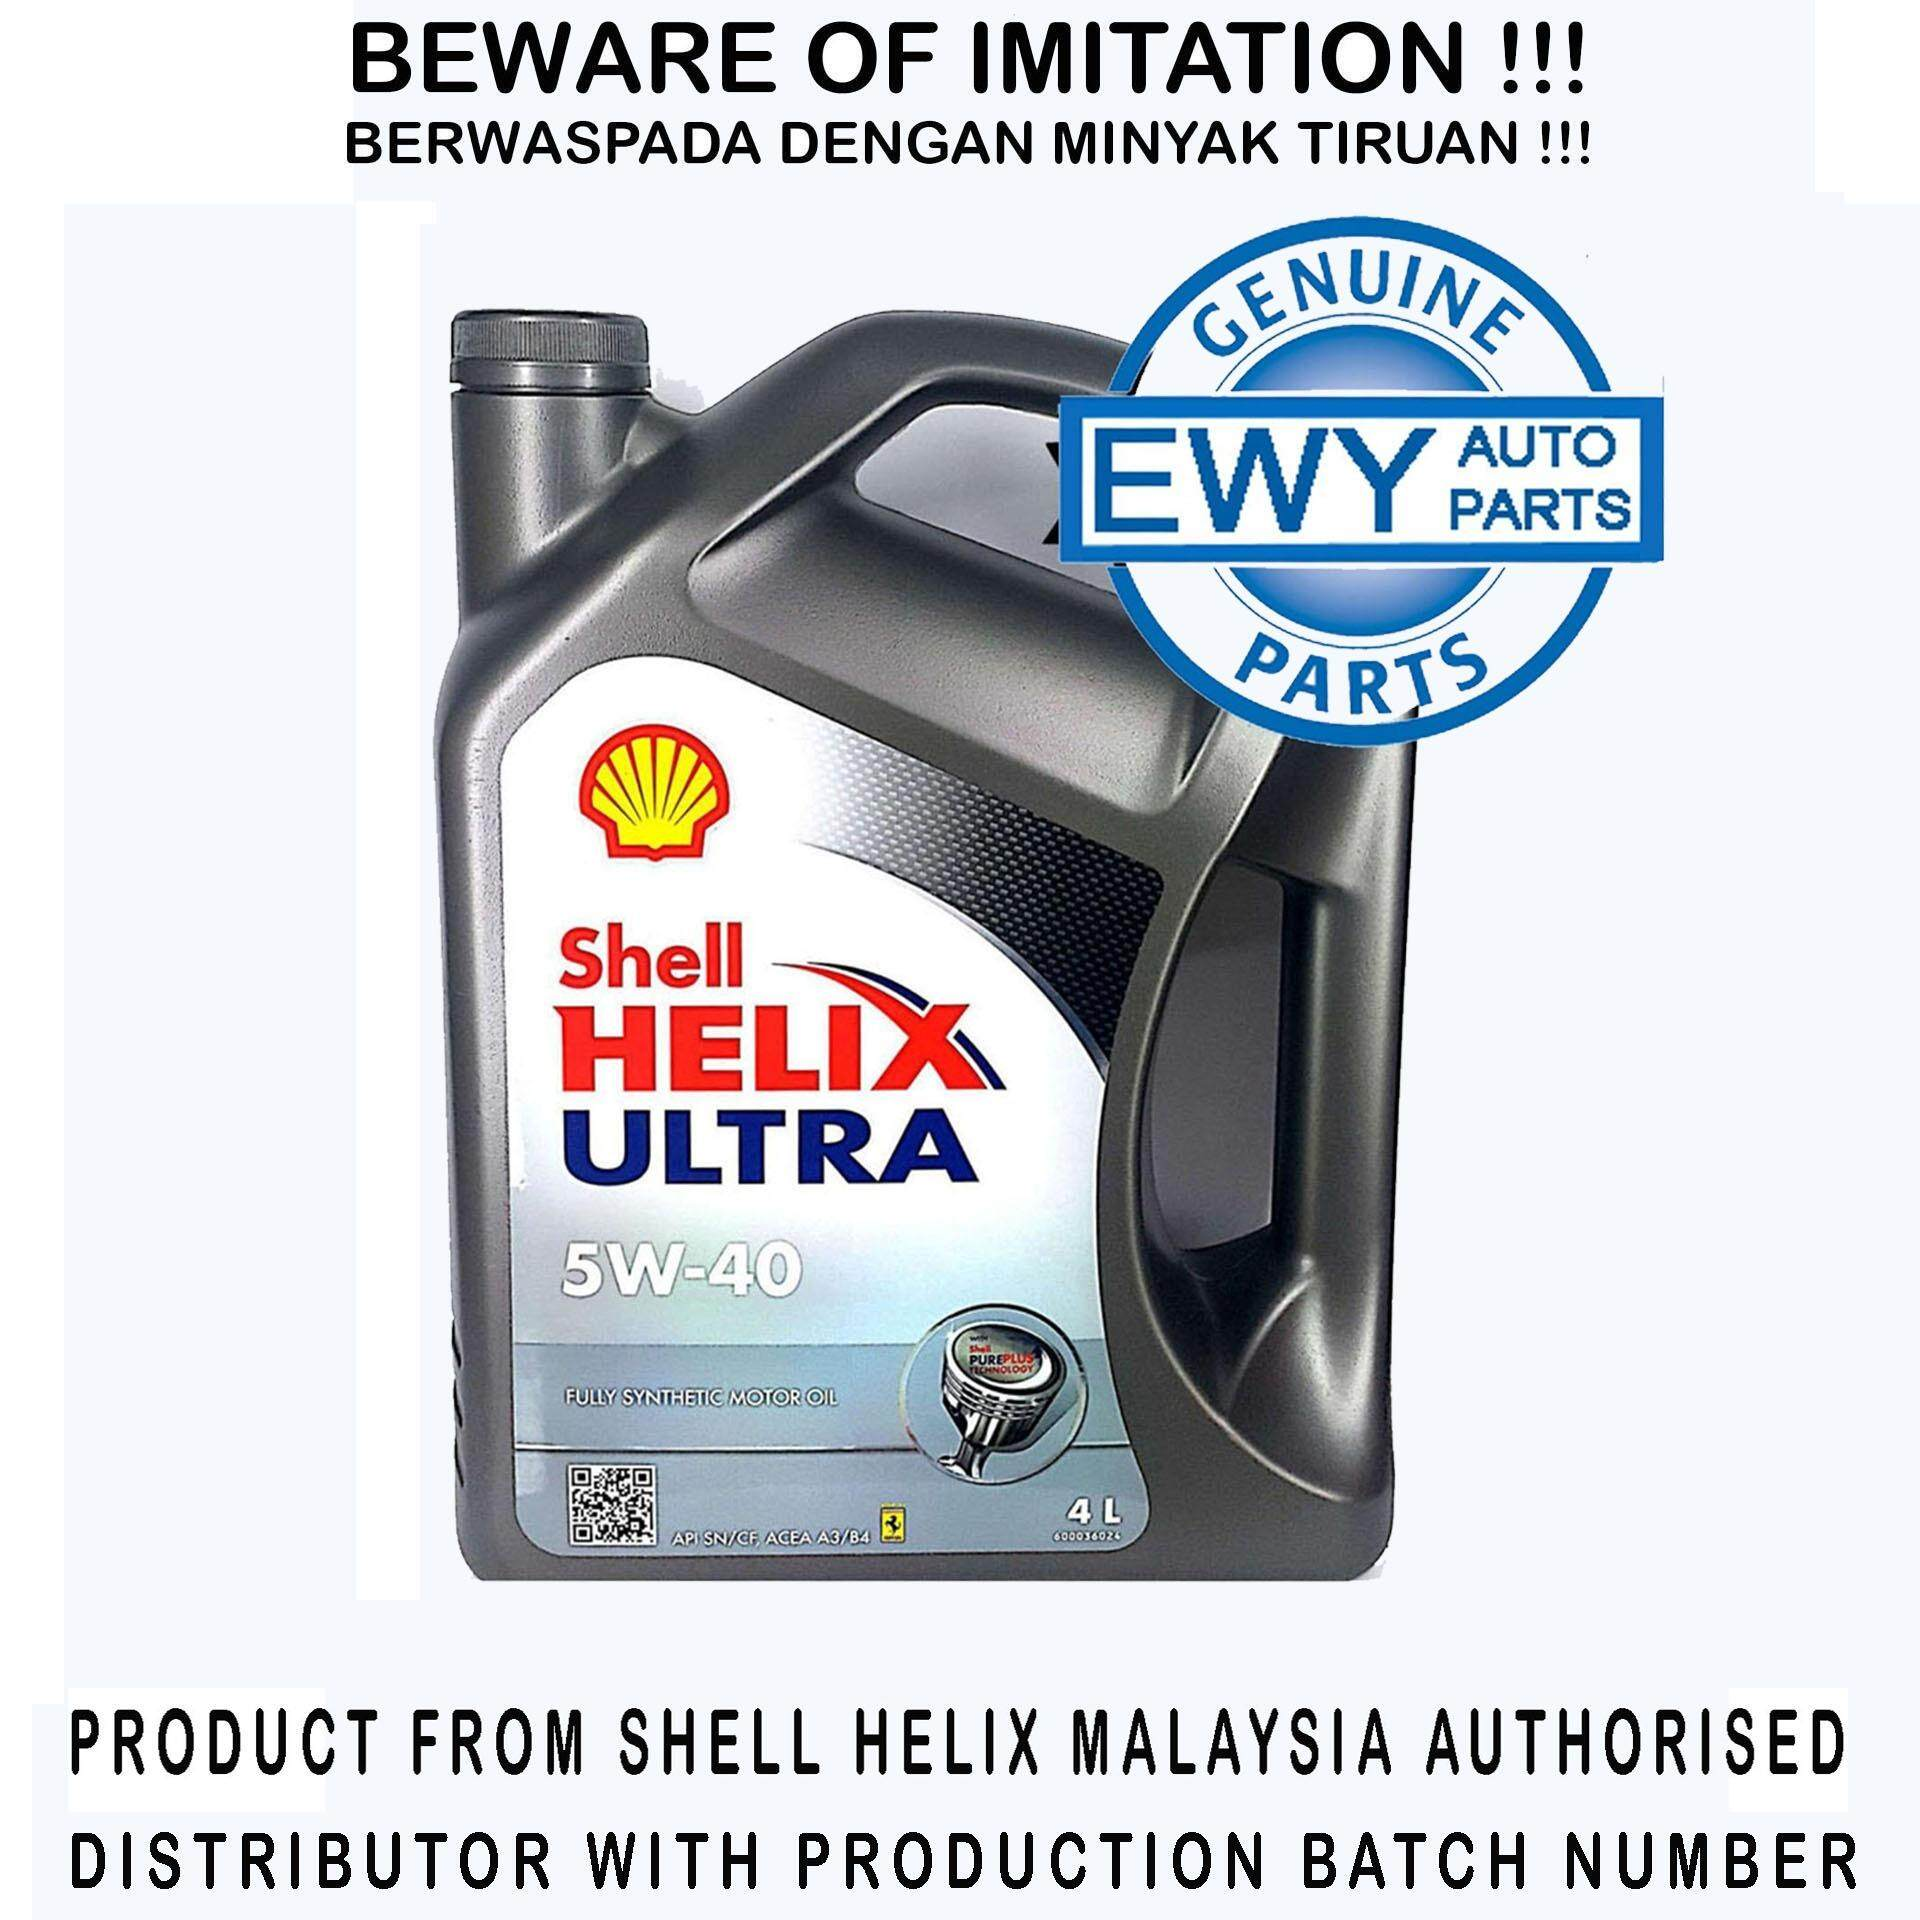 Shell Products For The Best Prices In Malaysia Helix Hx7 10w 40 Api Sn Cf Oli Mobil Mesin Bensin 4 Liter Engine Heaters Accessories